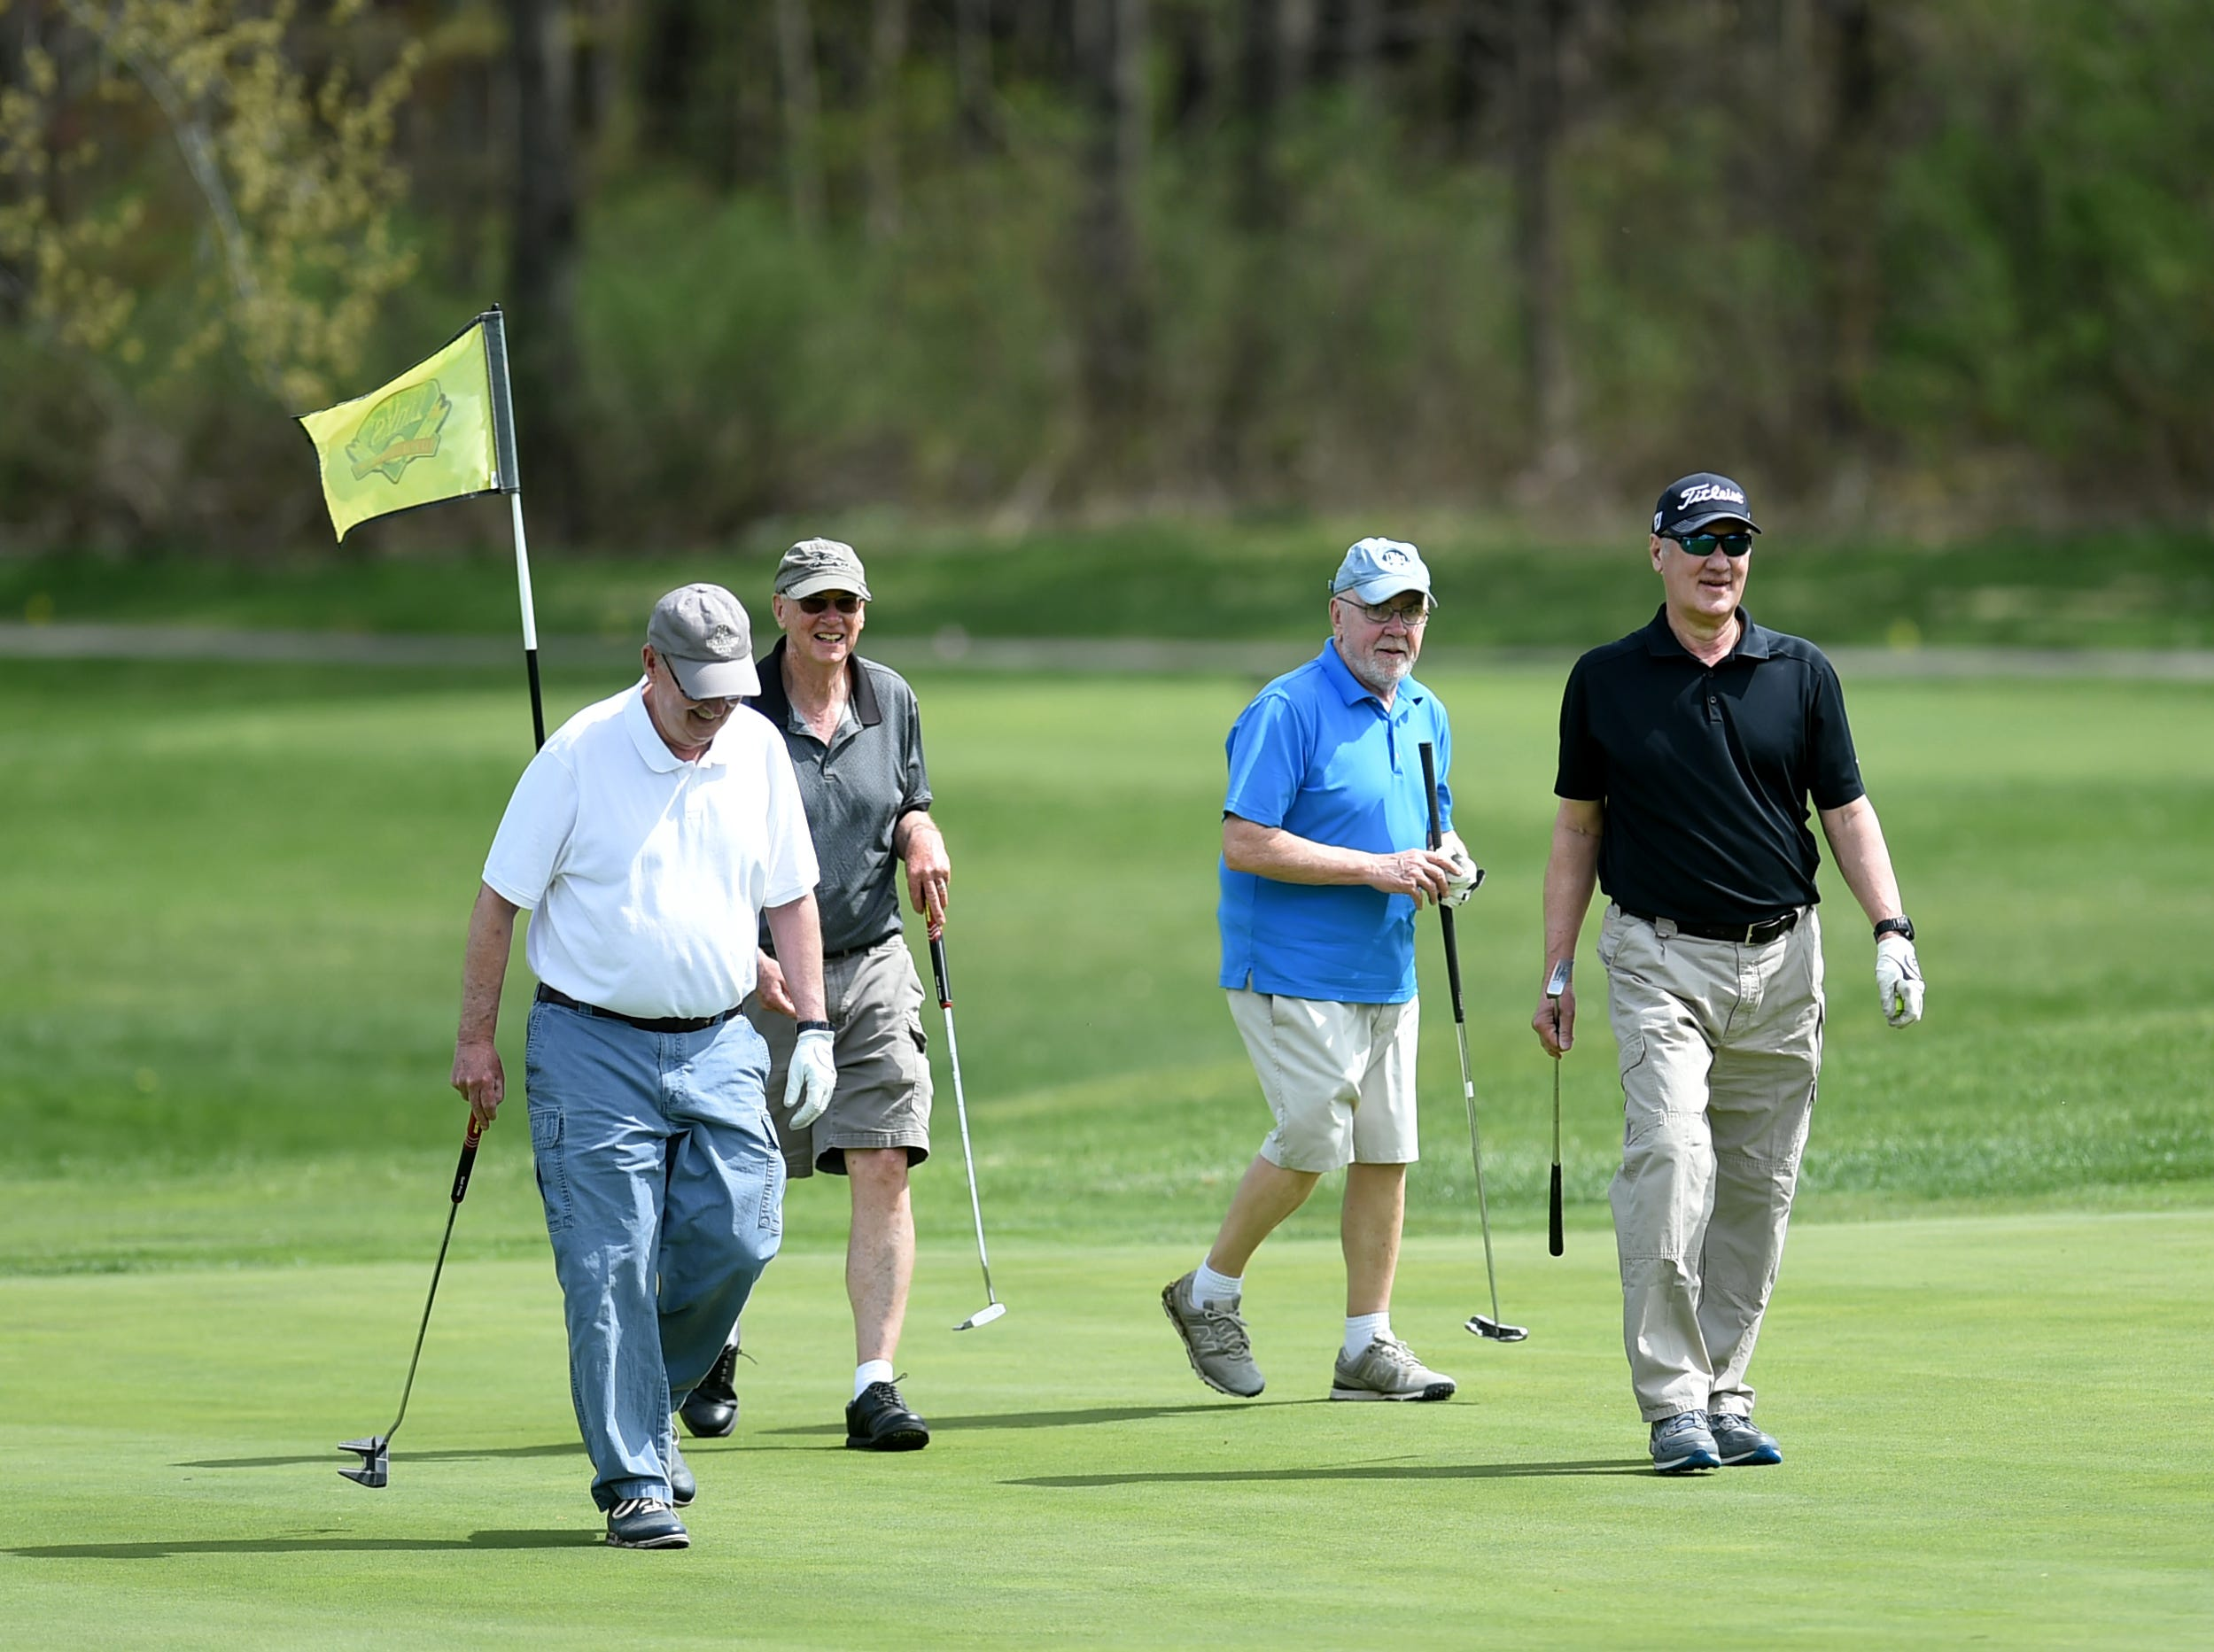 Golfers enjoy the warm weather at The Links at Hiawatha Landing in Apalachin on Tuesday, April 23, 2019.